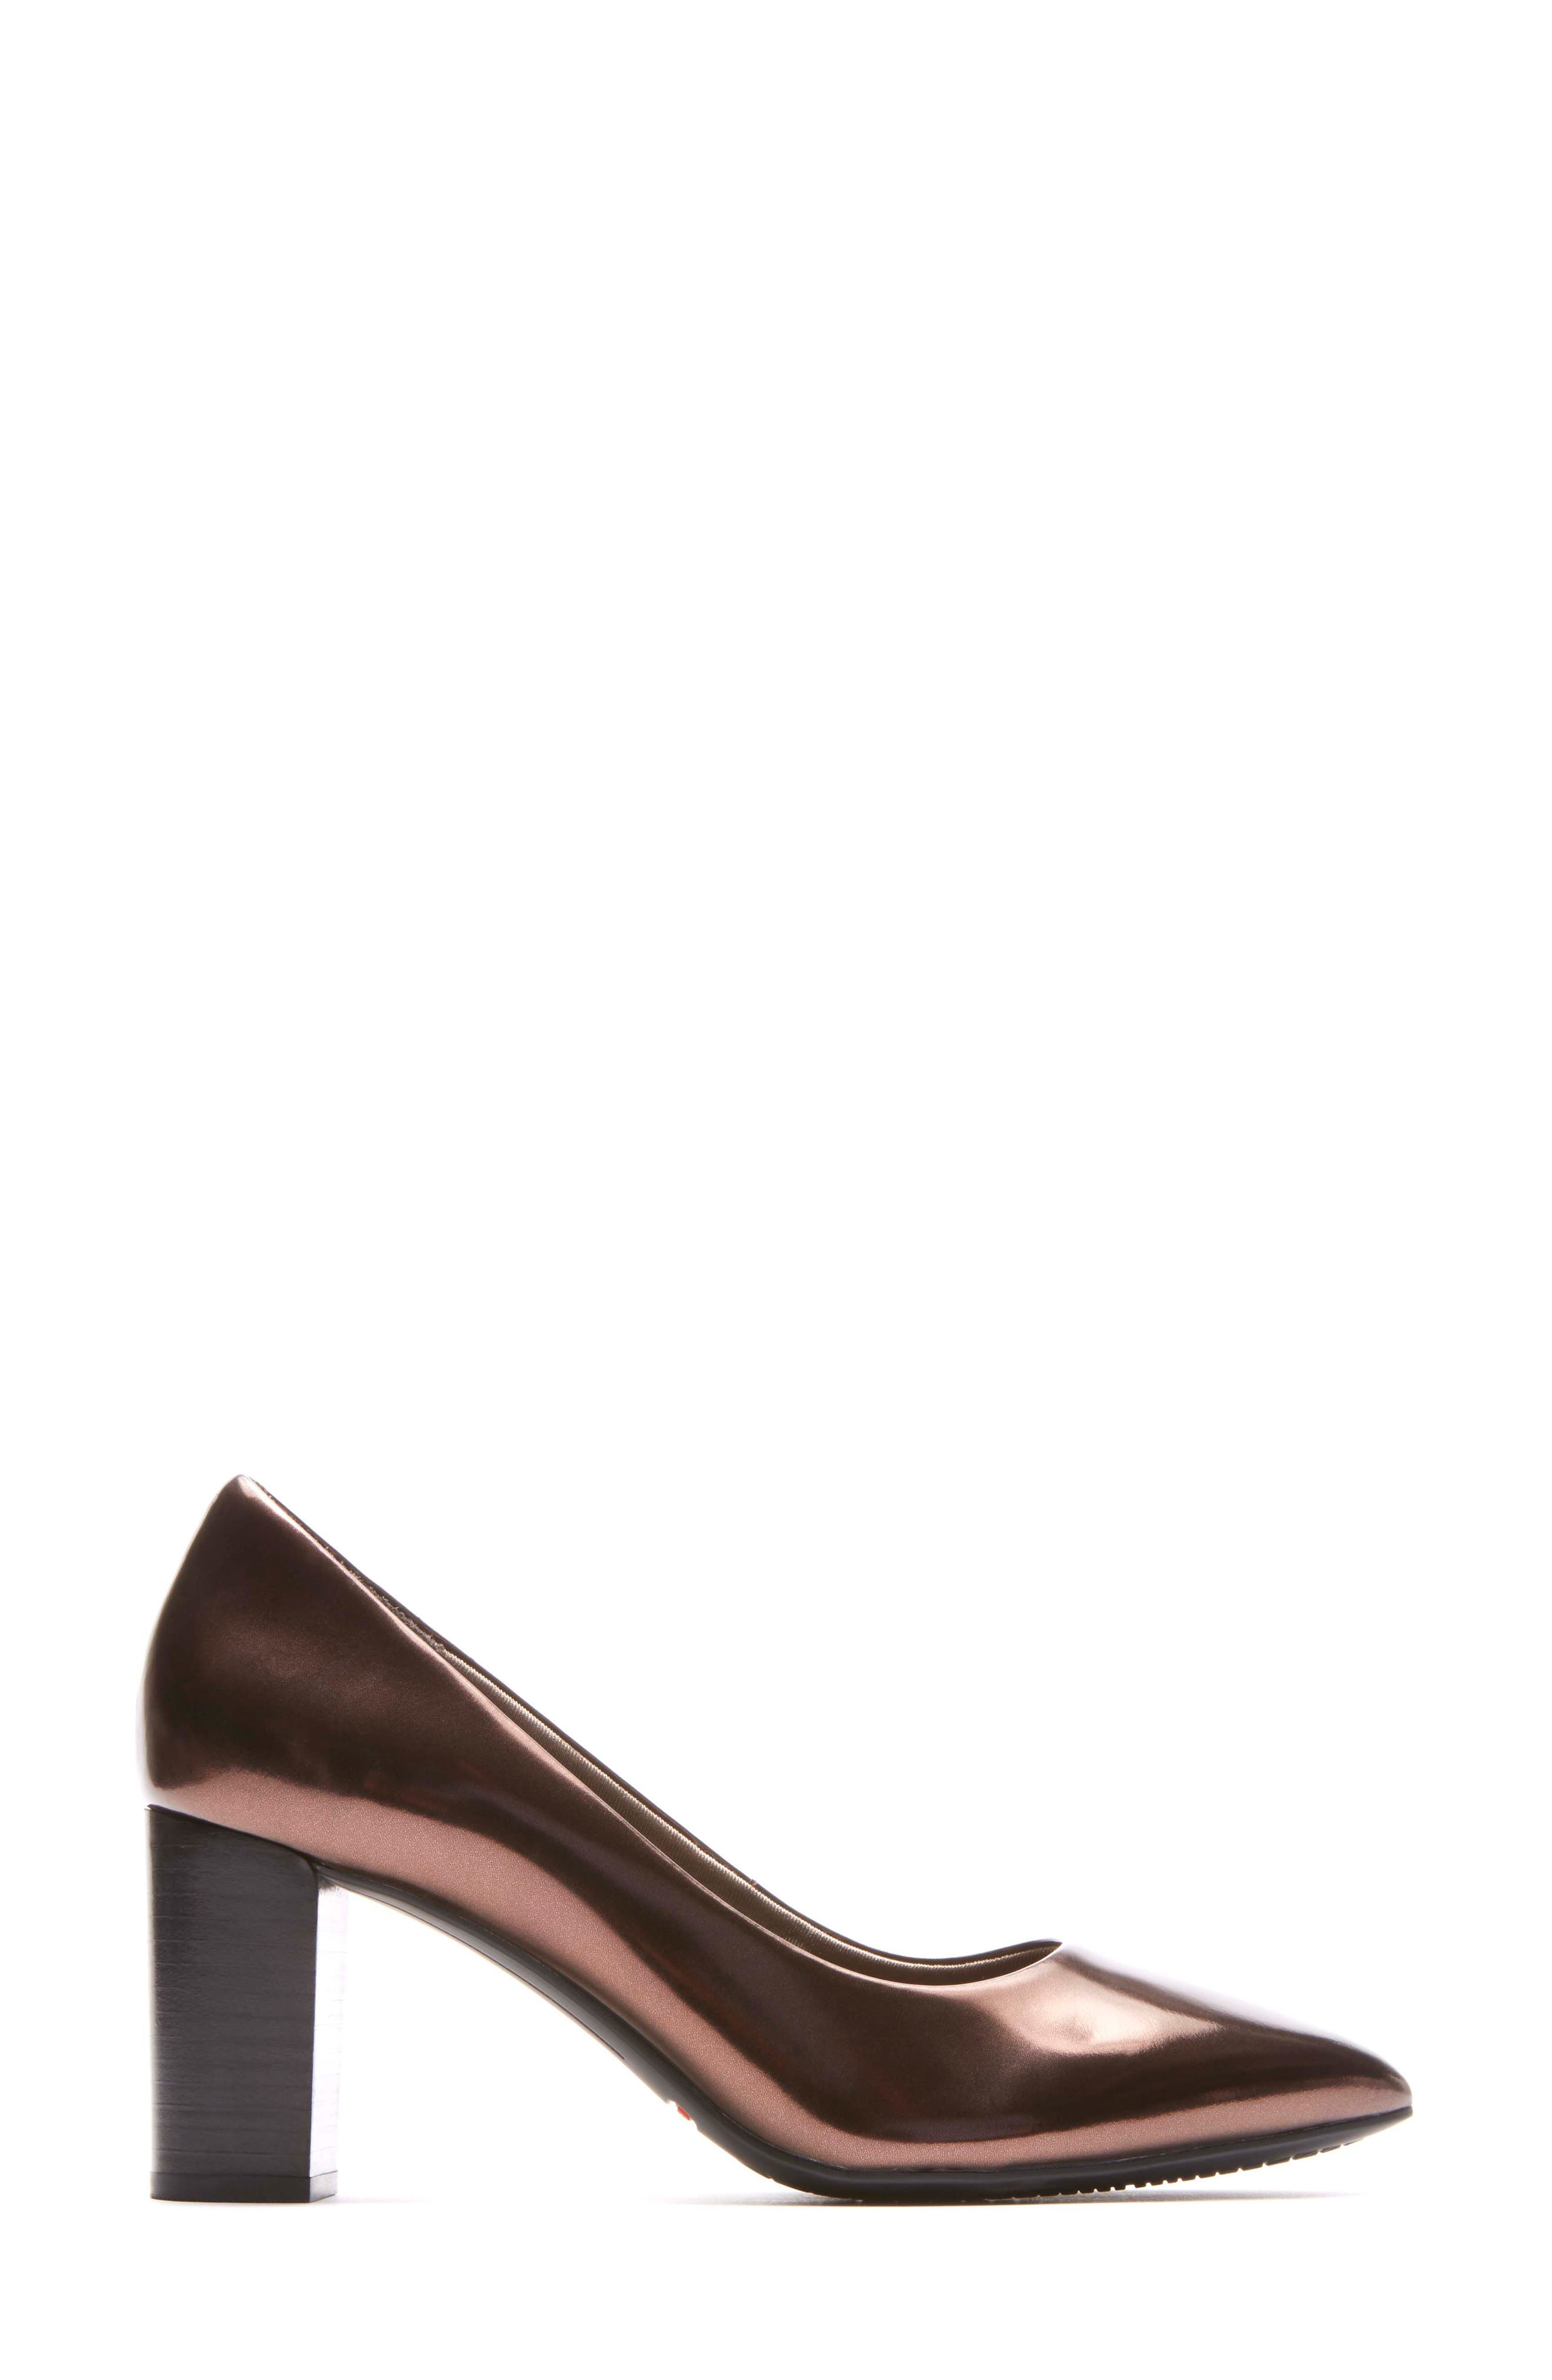 Total Motion Violina Luxe Pointy Toe Pump,                             Alternate thumbnail 3, color,                             BRONZE PATENT LEATHER